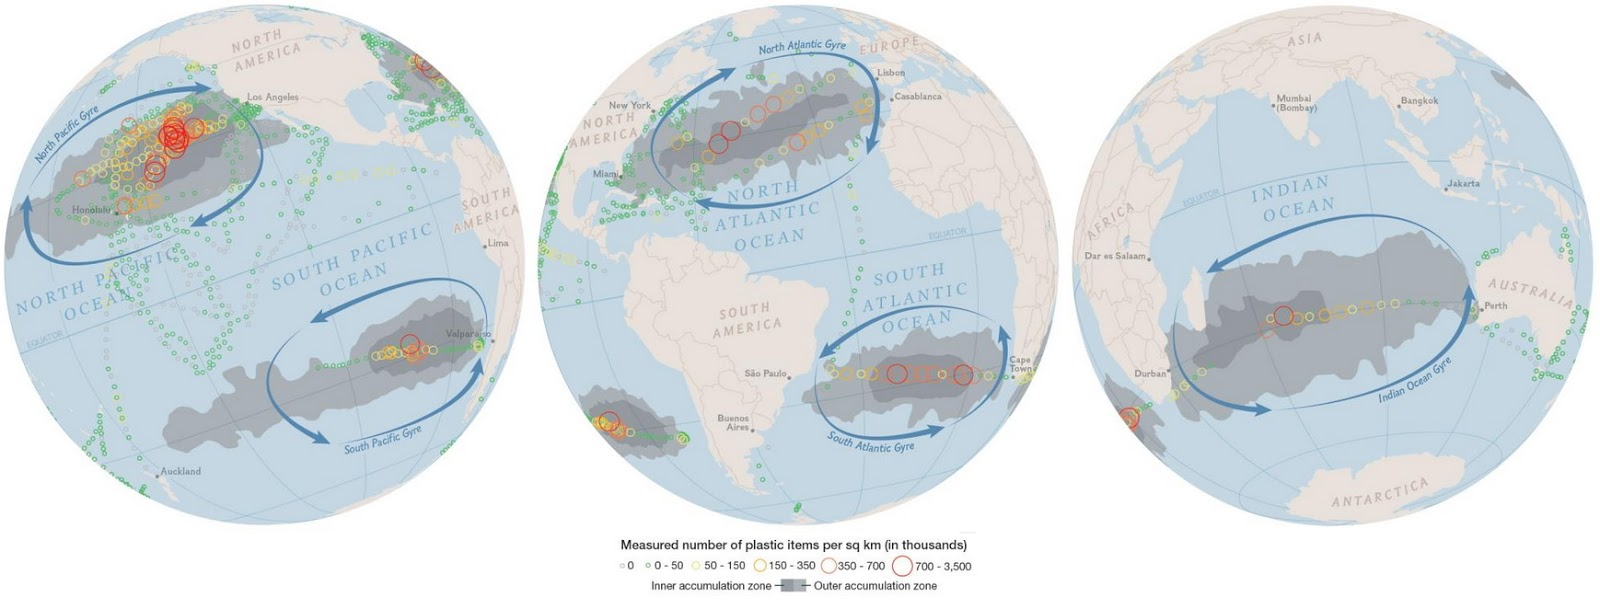 Concentration of Plastic in the Ocean